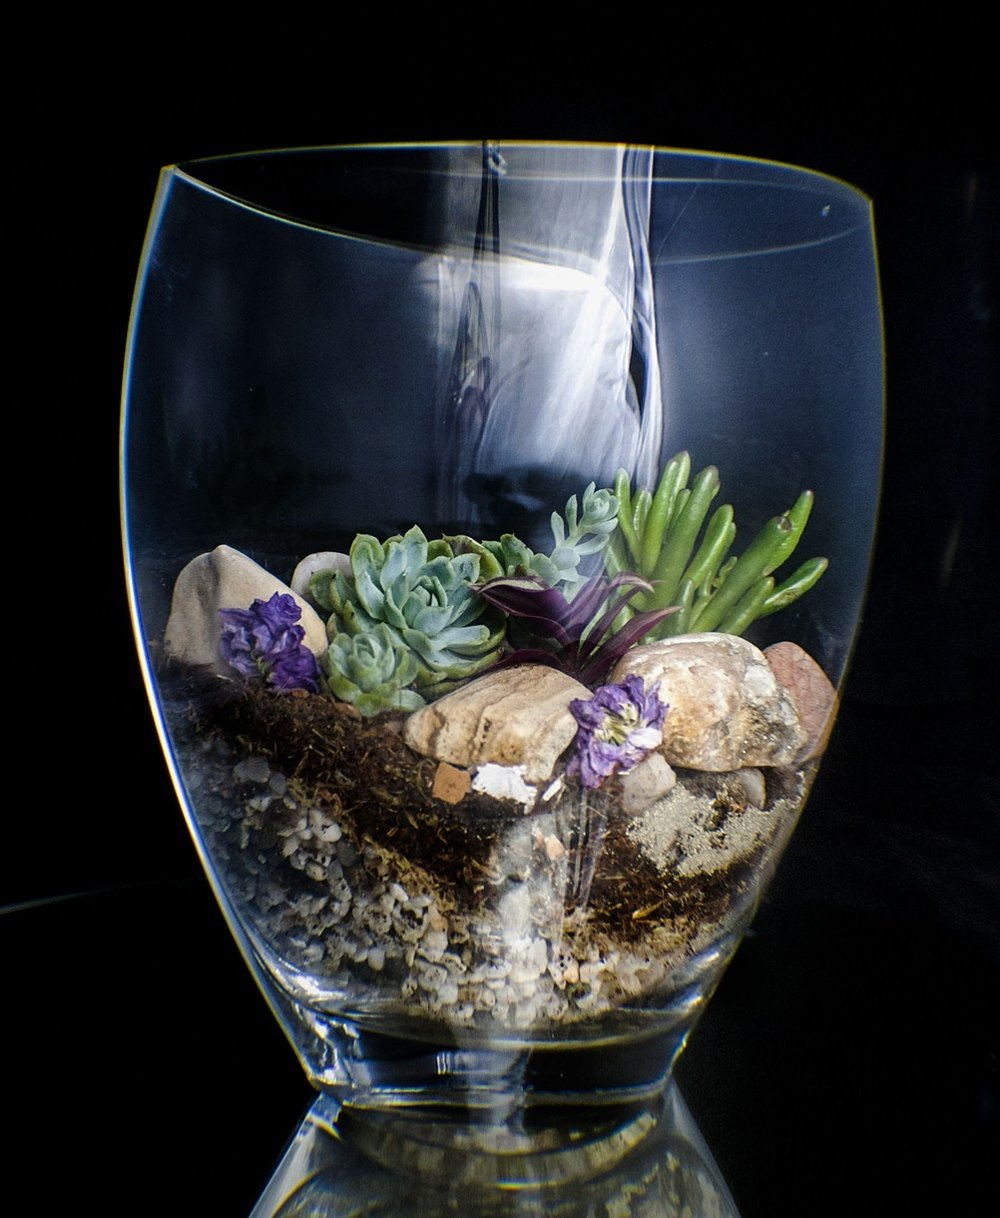 Medium-Succulent-Terrariumsucculents-Found-crystal-rock-dried-flowers-2015.jpg